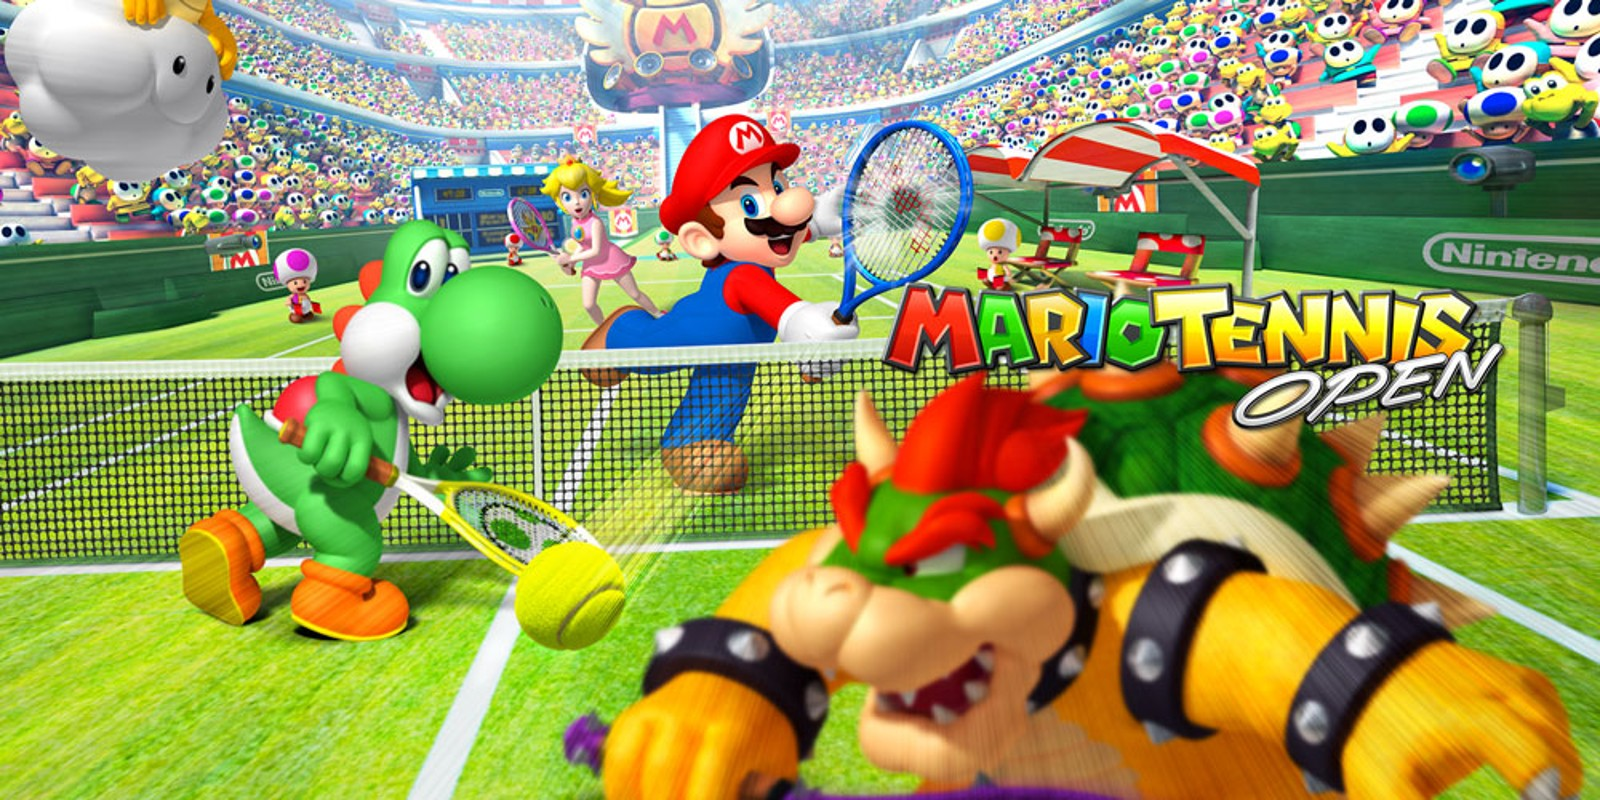 European Qr Codes For Mario Tennis Open